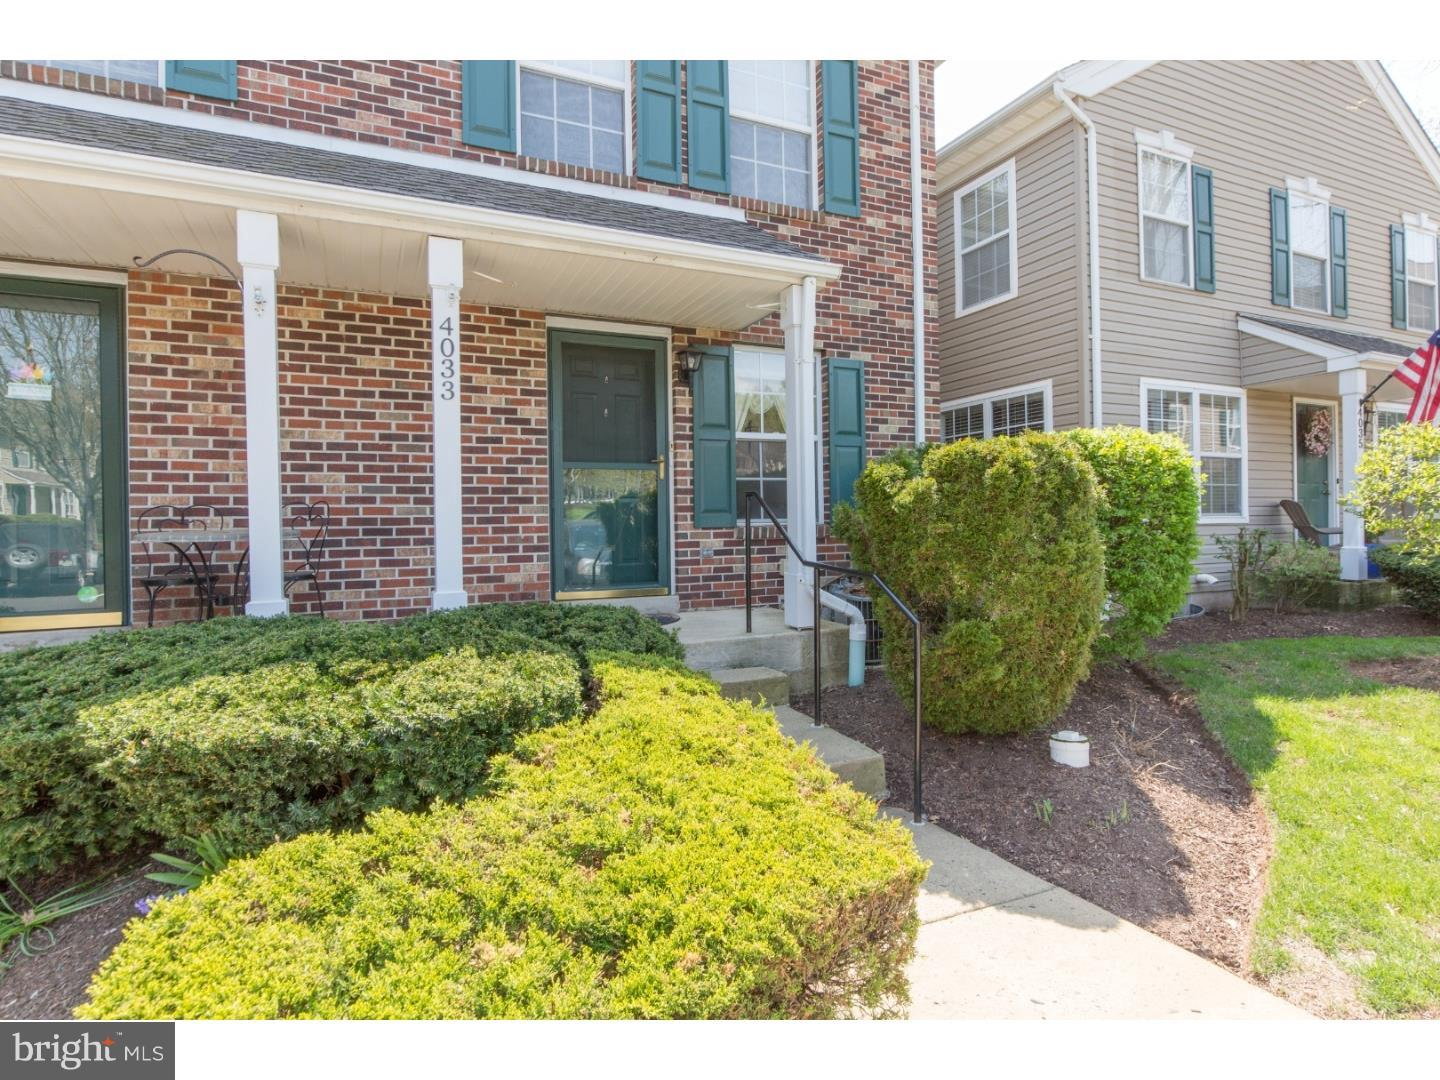 Property for Rent at 4033 CAPTAIN MOLLY CIR #AIN Doylestown, Pennsylvania 18902 United States